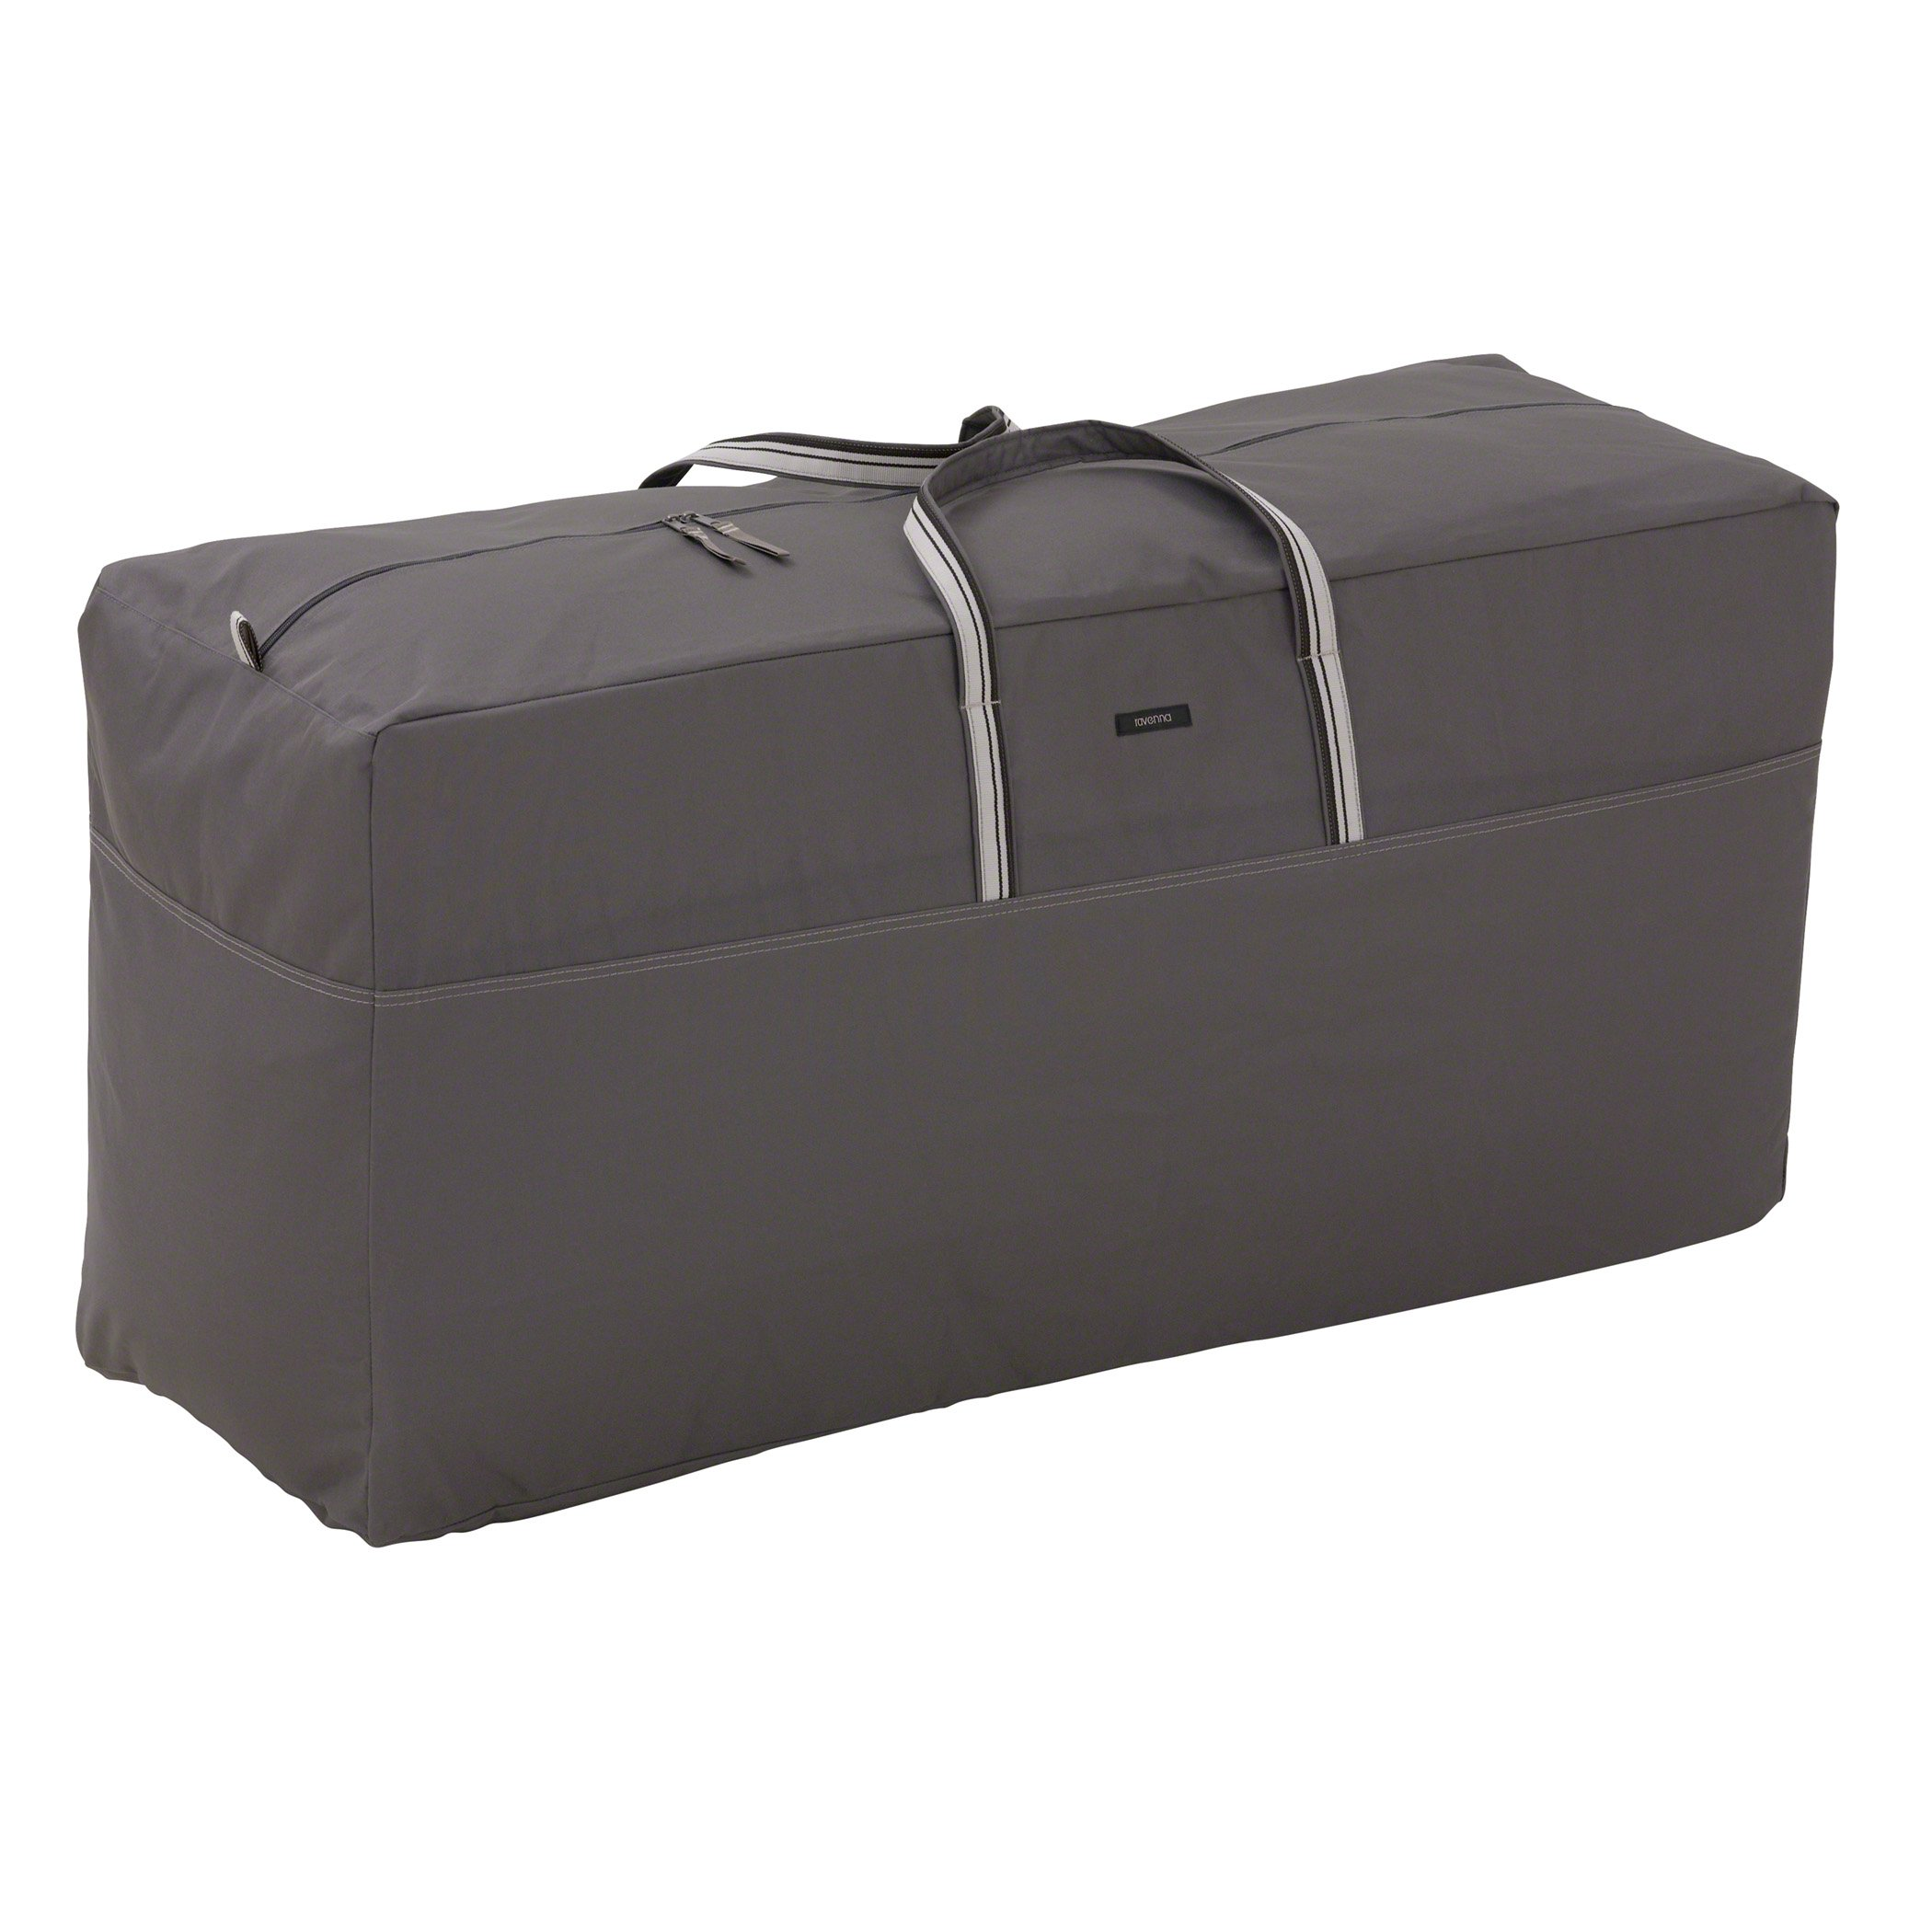 Classic Accessories Ravenna Water-Resistant 45.5 Inch Patio Cushion and Cover Storage Bag,